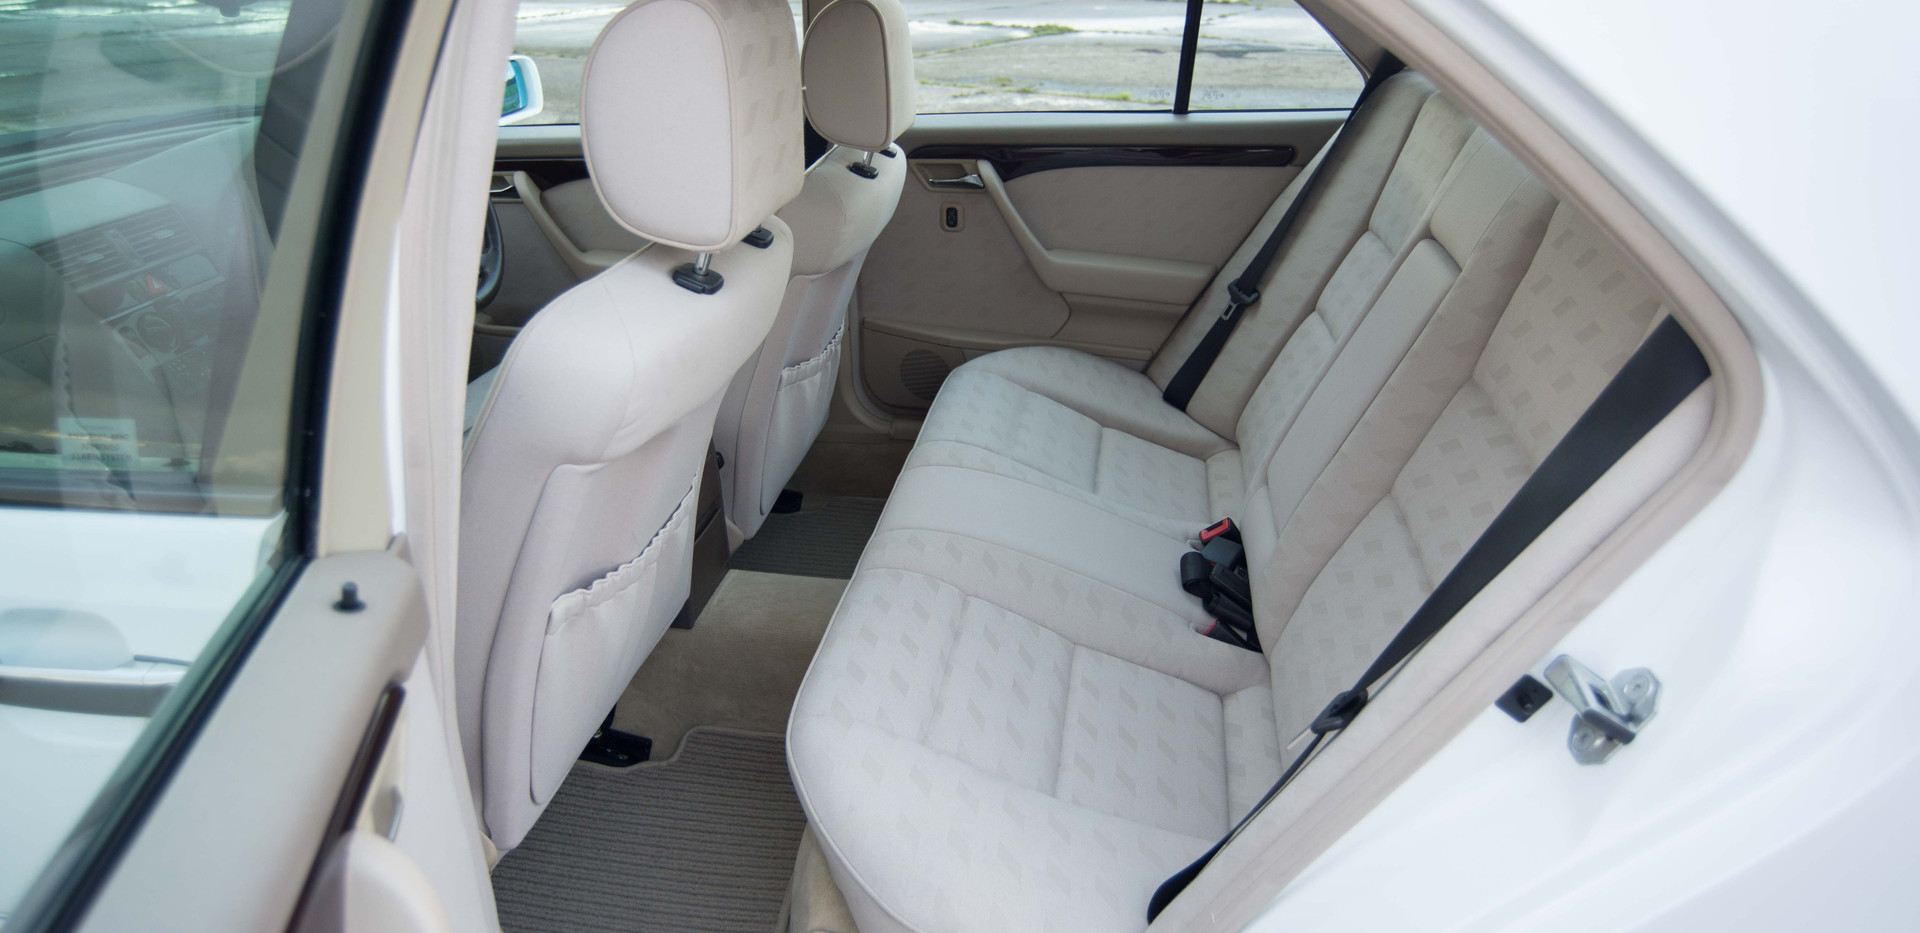 Mercedes C280 For Sale UK London  (14 of